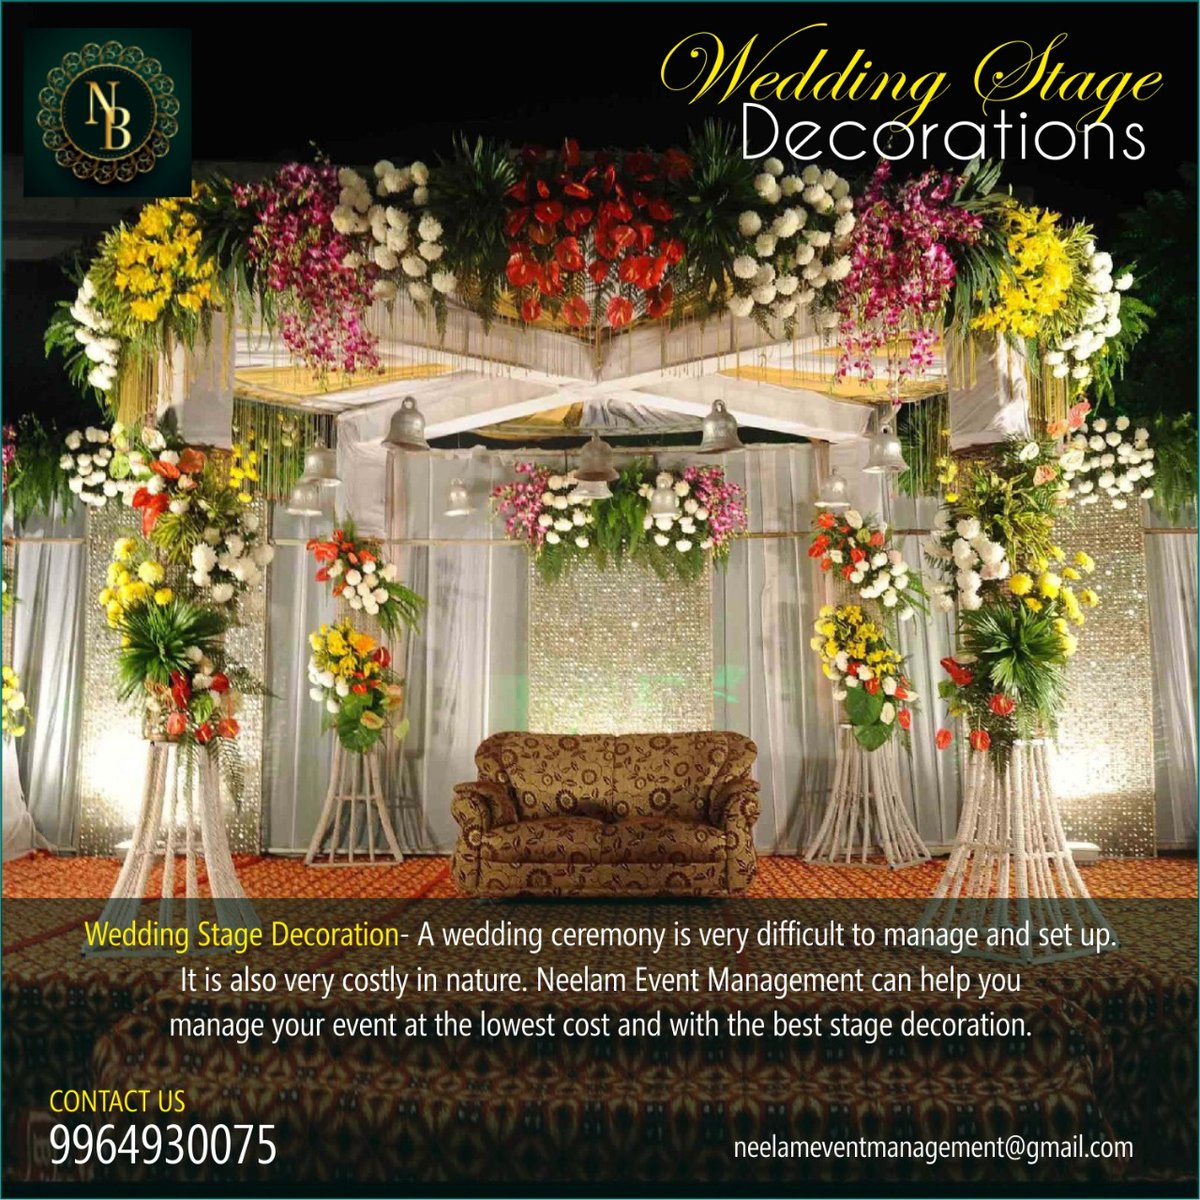 Wedding stage decorations... A wedding ceremony is very difficult to manage and setup. For wedding decorations call to- 9964930075. #wedding #weddingstage #weddingday #weddingdecorations #neelamevents #eventplanner #event #planners